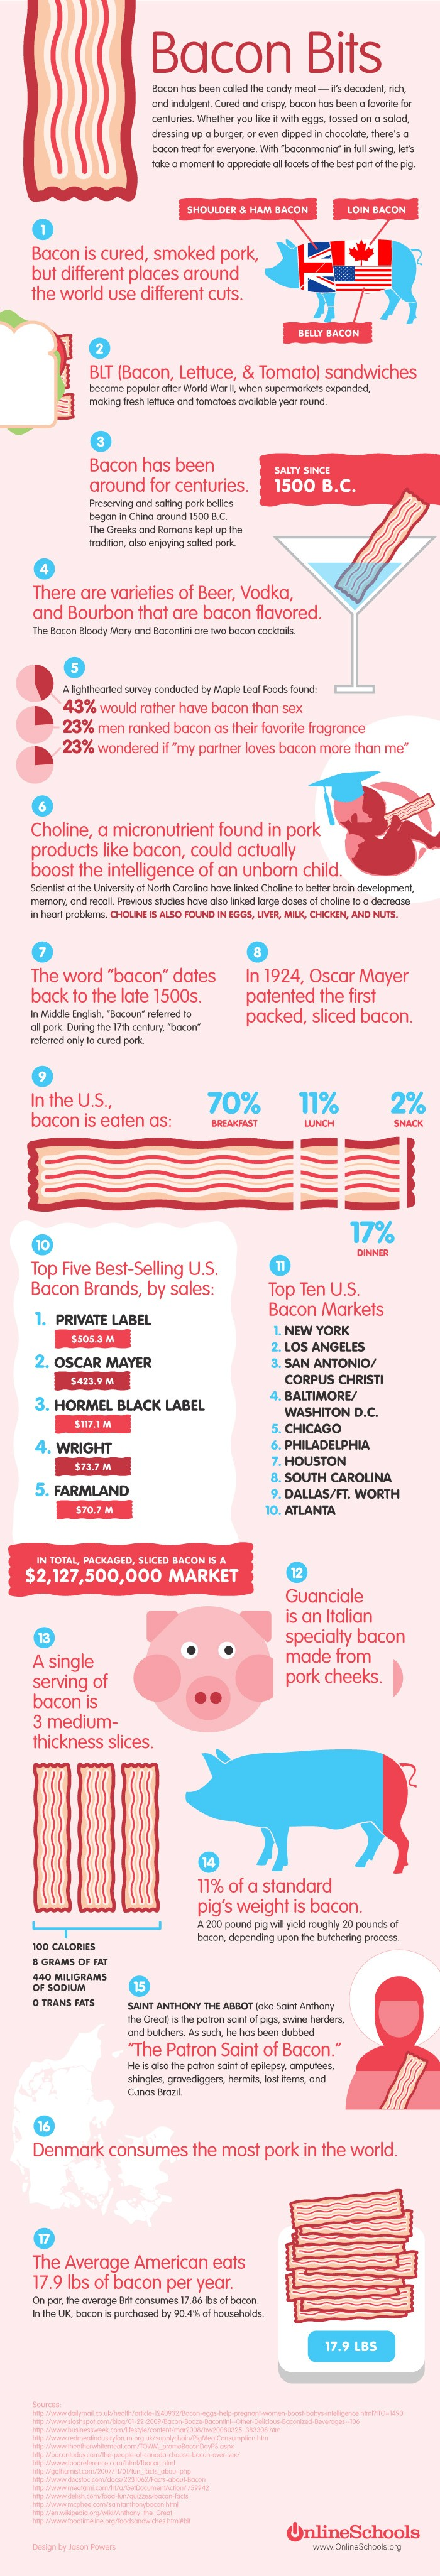 Bacon Infographic